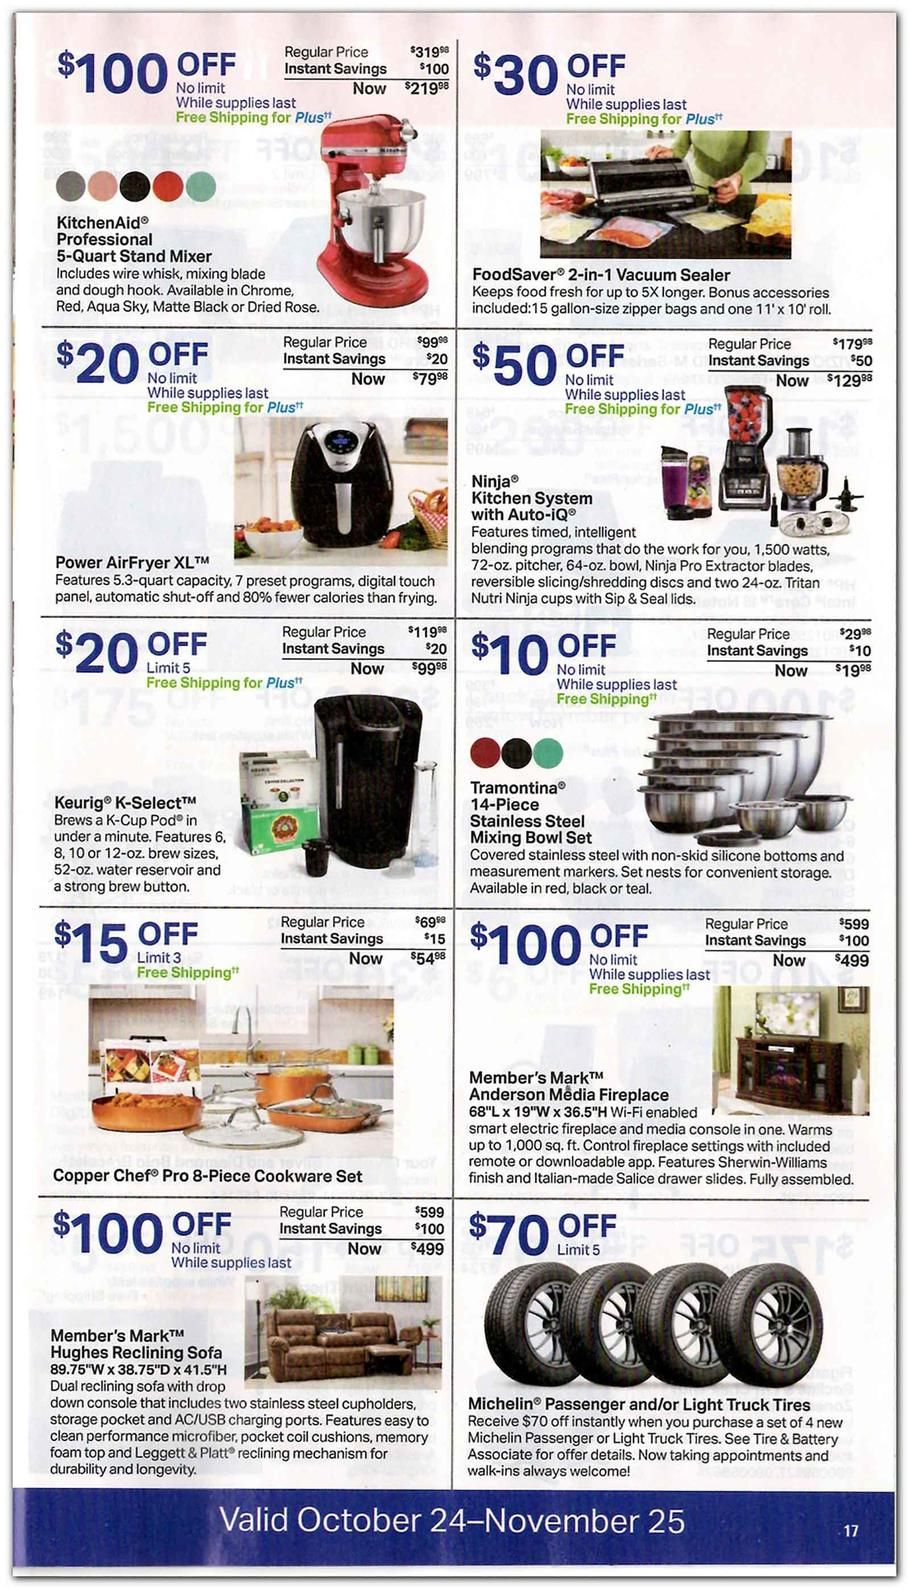 Sam S Club Featured 2018 Ads And Deals Sams Club Ads Vacuum Sealer